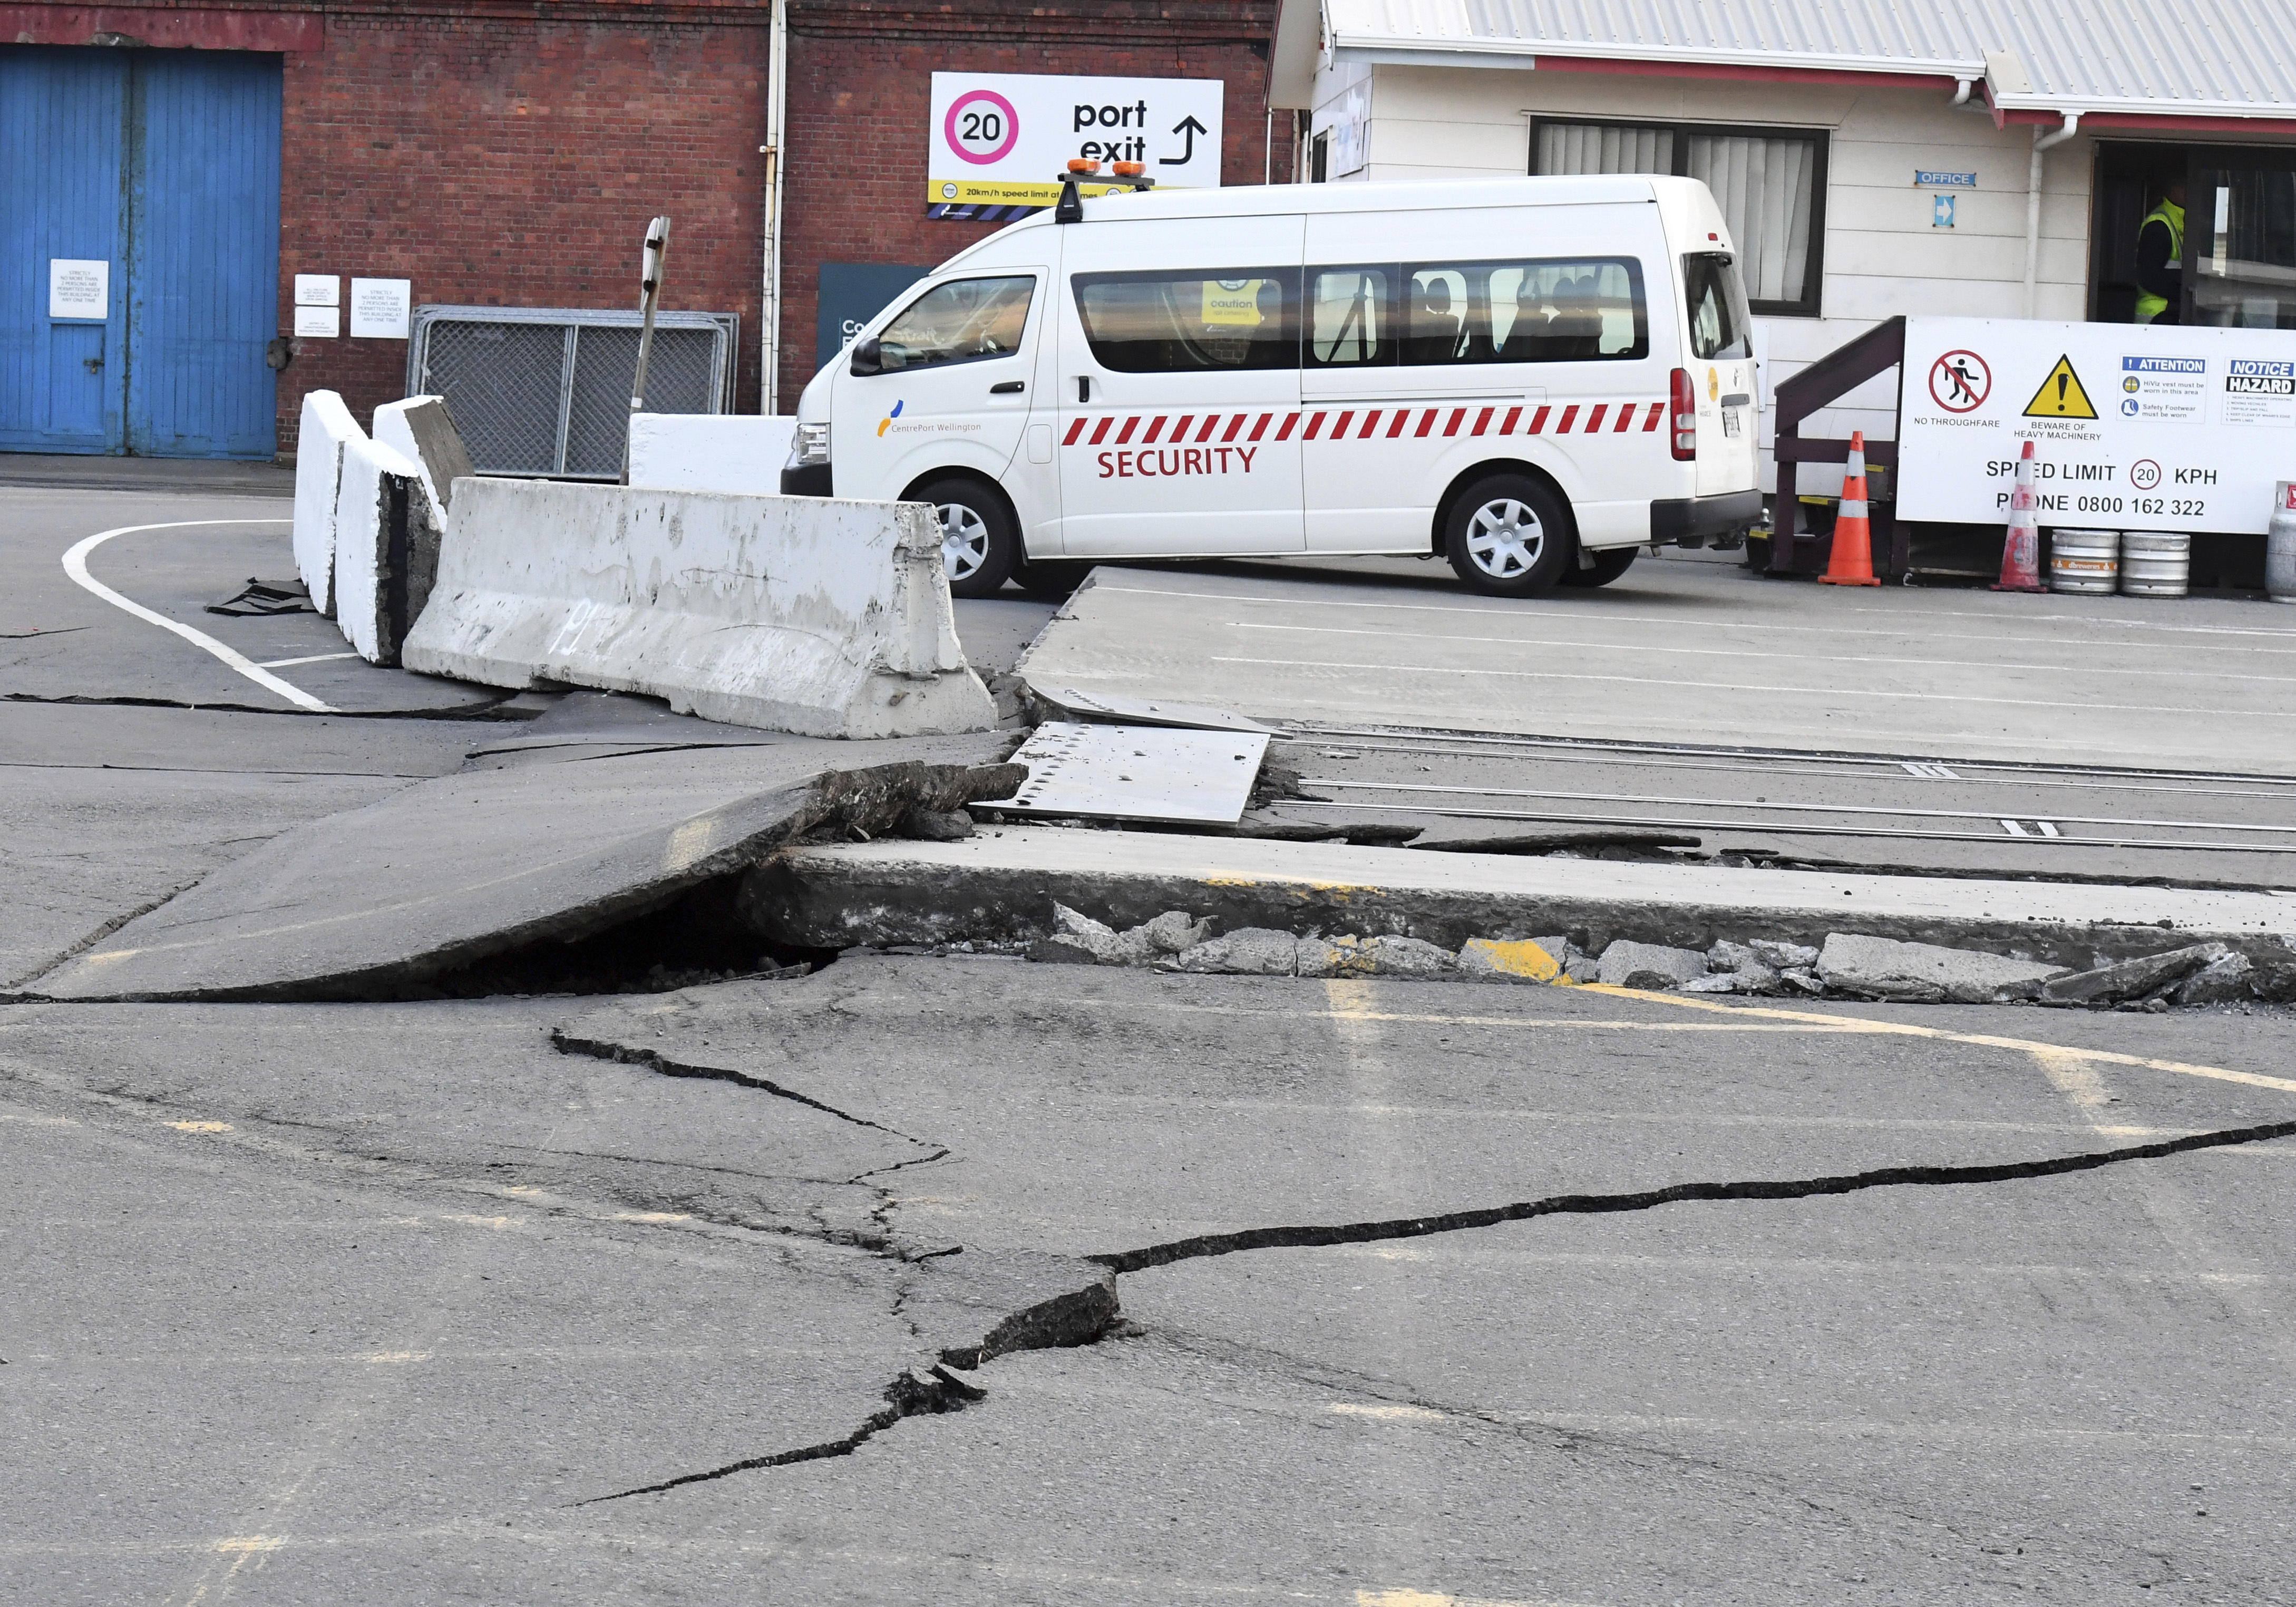 Powerful magnitude-7.8 earthquake hits Christchurch, New Zealand - CBS News